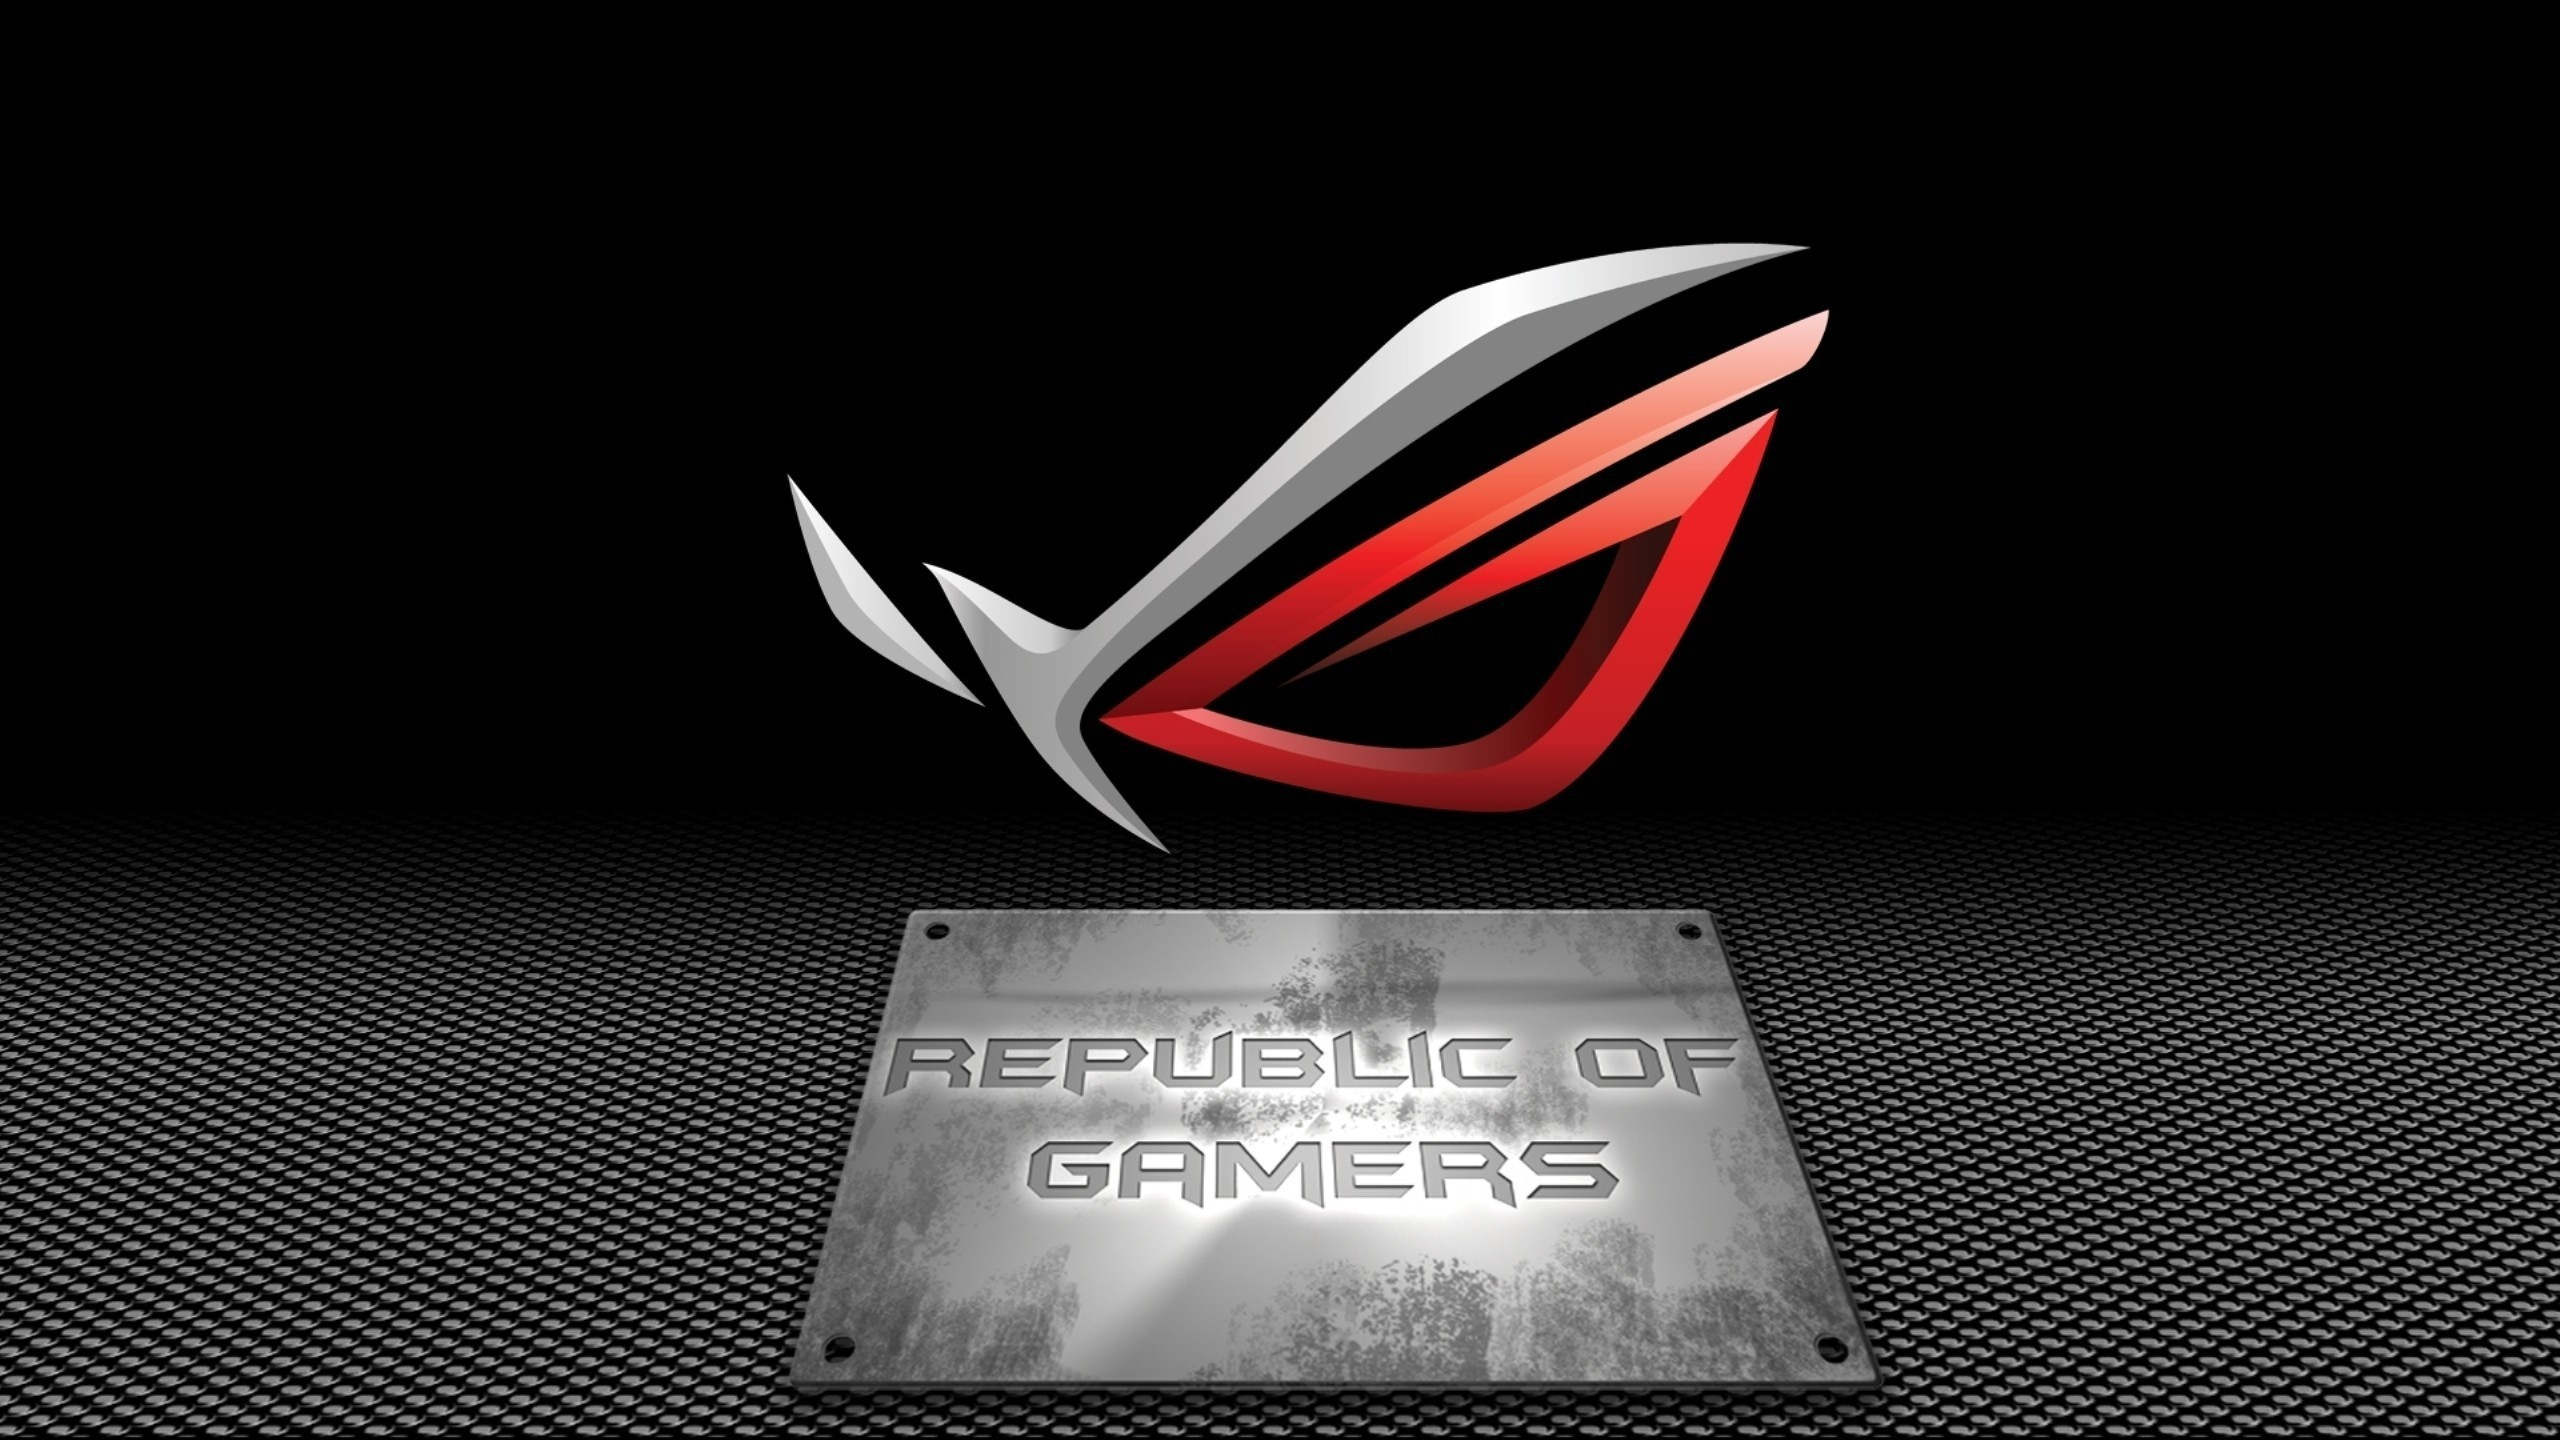 2560x1440 Asus rog republic of gamers wallpaper | via www.allwallpaper.in | (